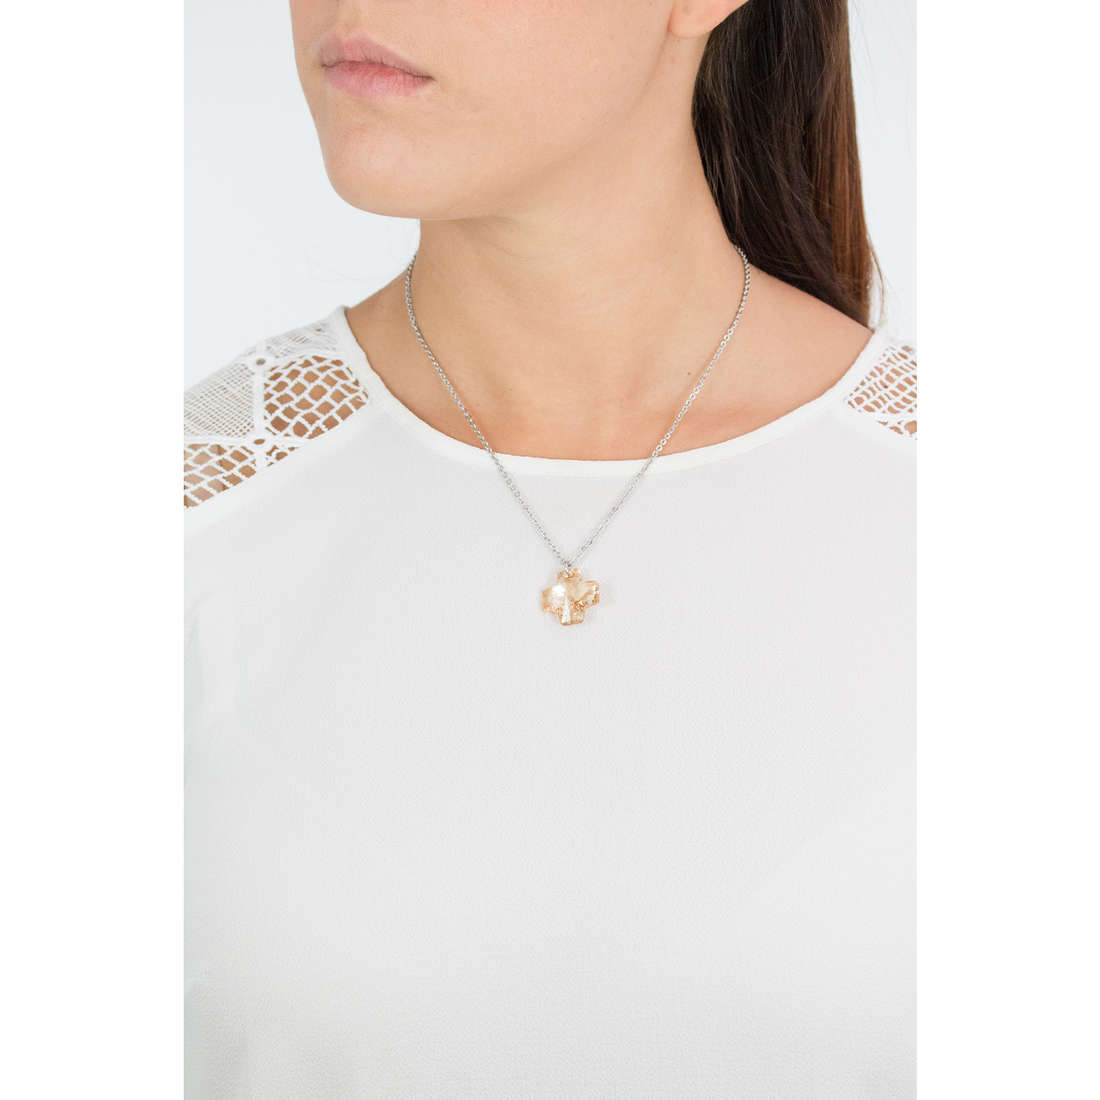 Luca Barra necklaces woman LBCK444 photo wearing